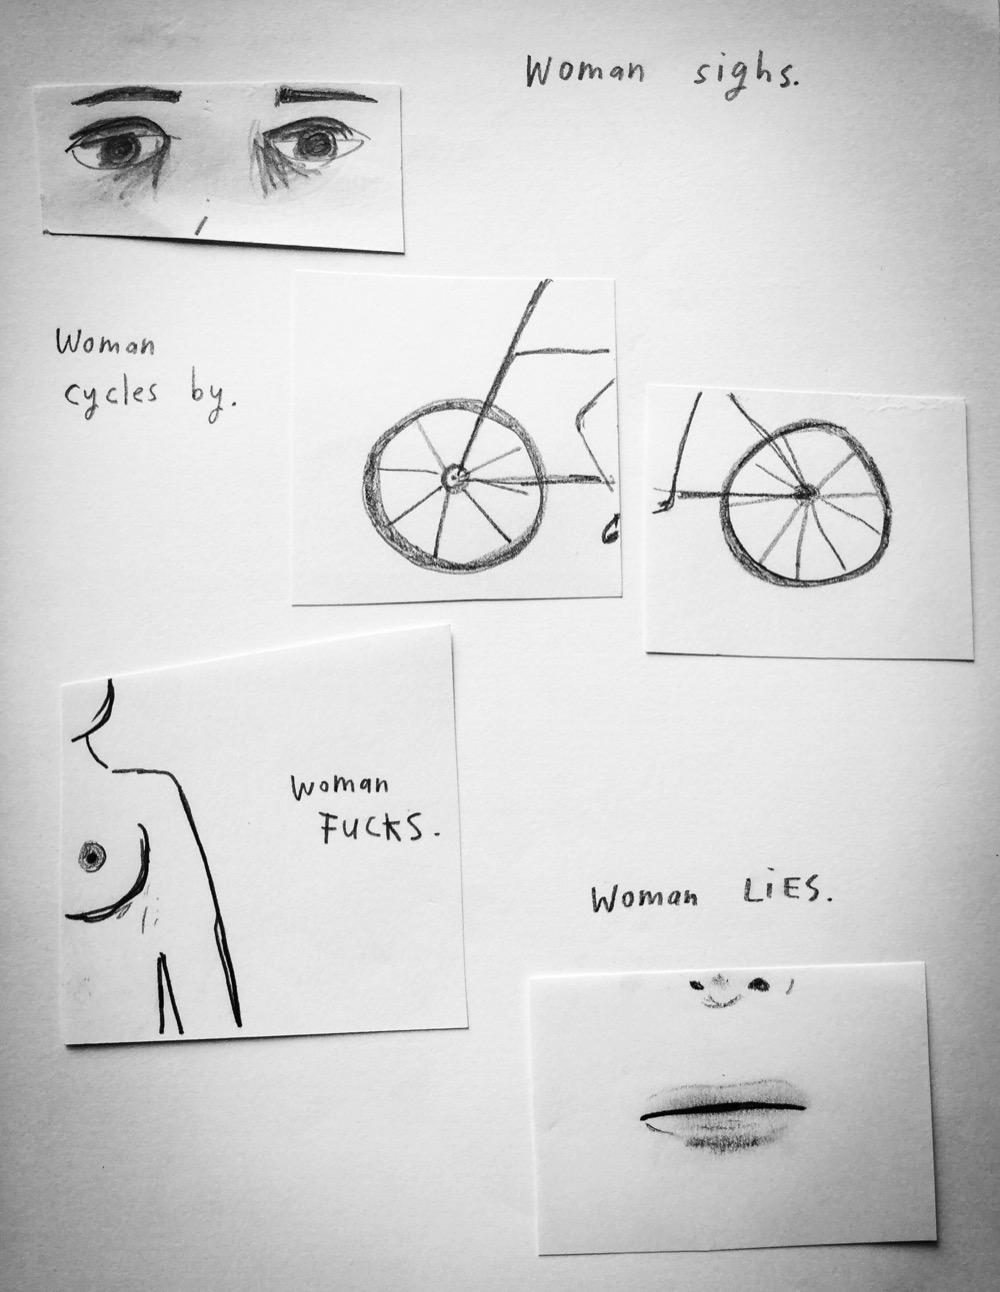 Woman sighs. Woman cycles by. Woman fucks. Woman lies.